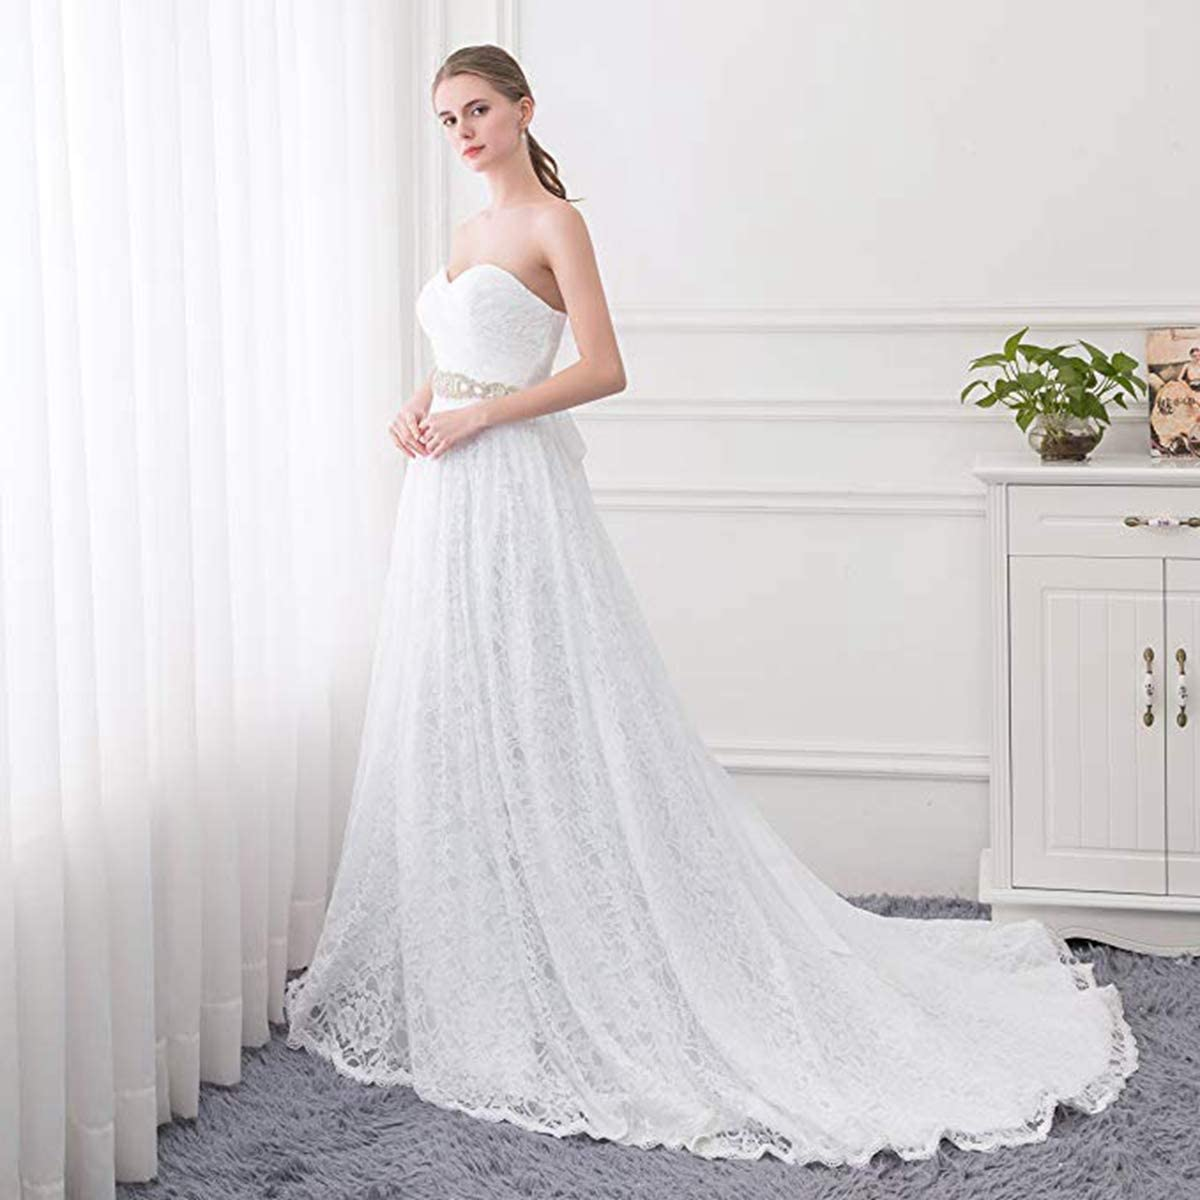 Beautyprom Womens Ball Gown Lace Bridal Wedding Dresses